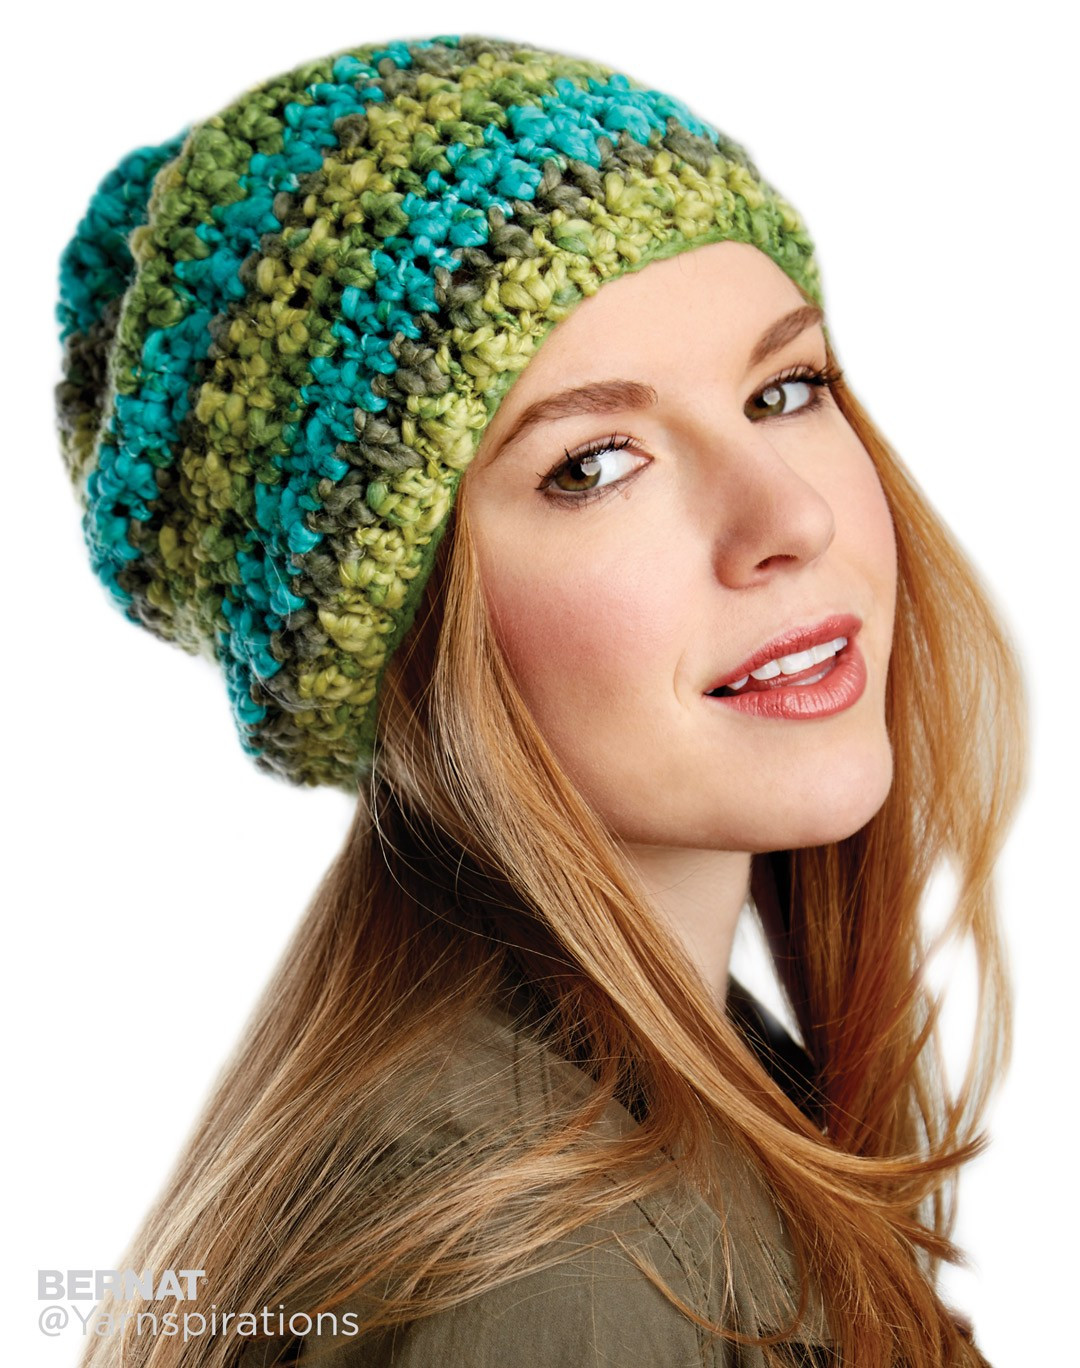 Bernat Crochet Patterns Best Of Bernat Slouchy Crochet Hat Crochet Pattern Of Awesome 45 Photos Bernat Crochet Patterns